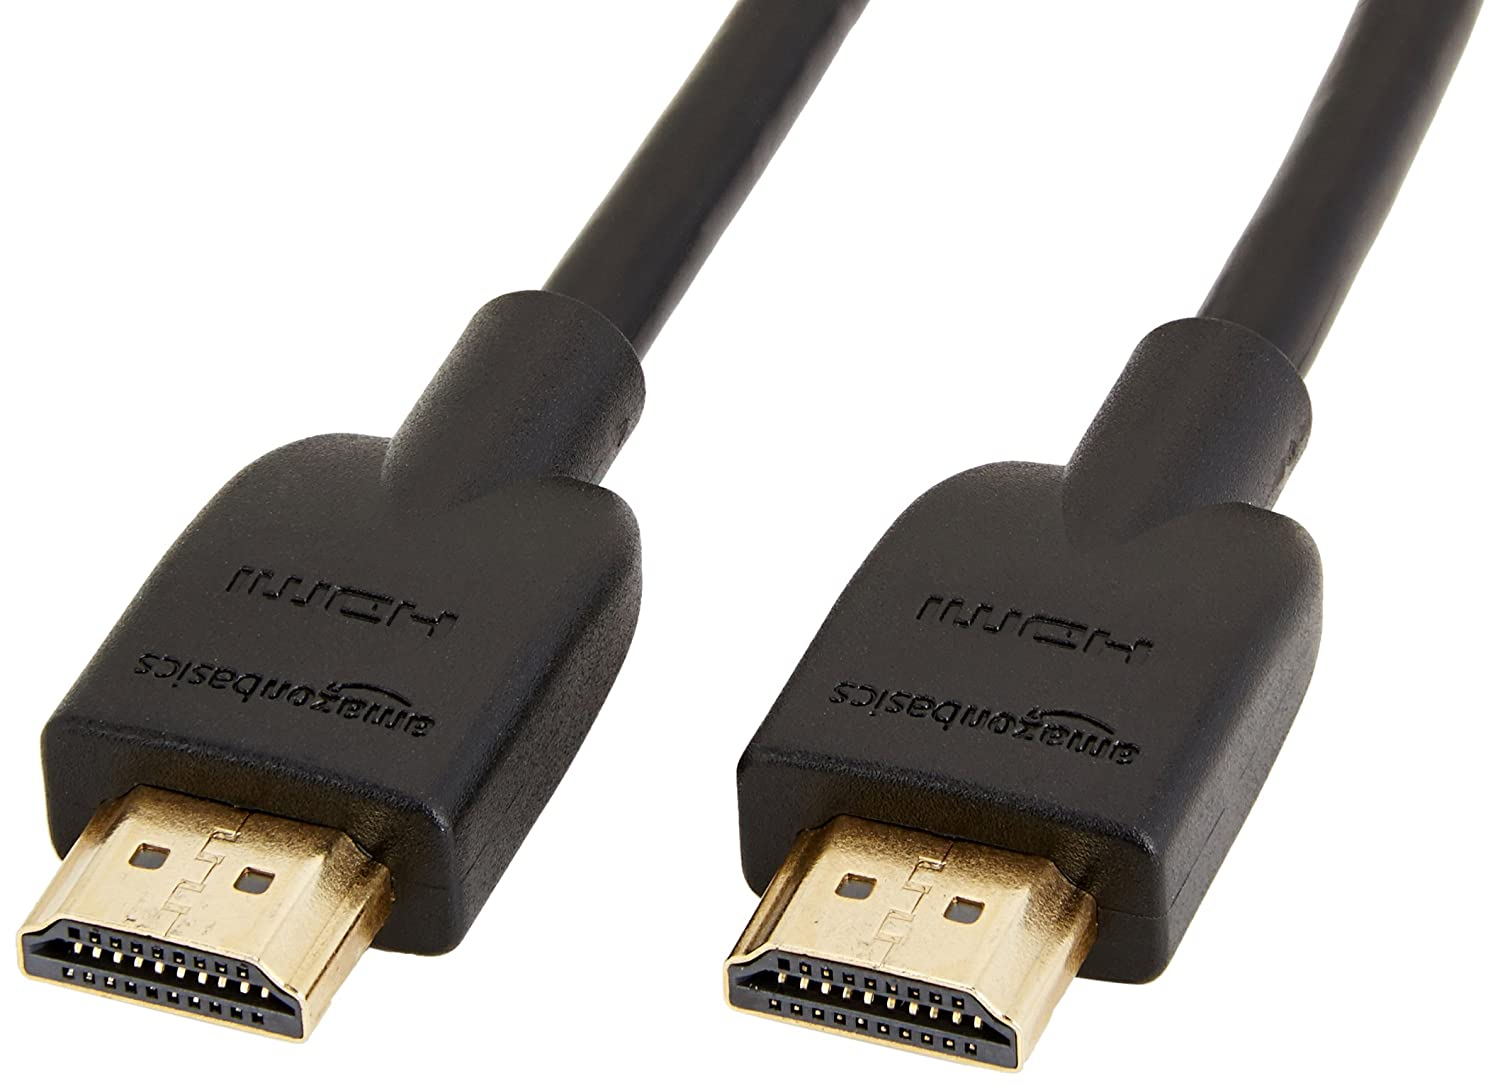 AmazonBasics High-Speed HDMI Cable - 3 Feet (Latest Standard)